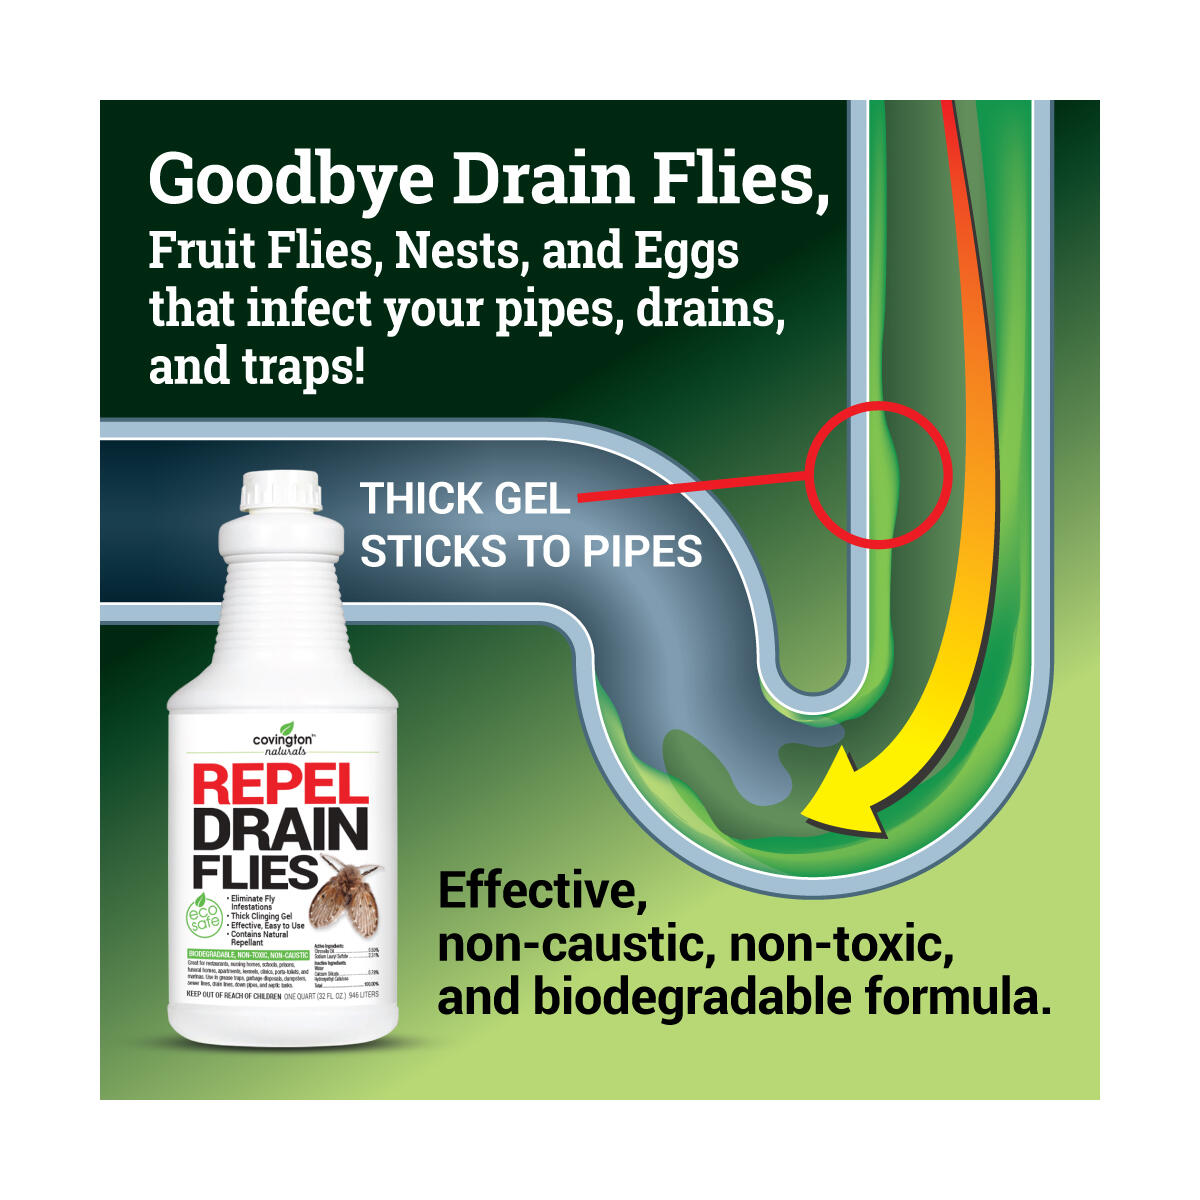 Covington Drain Fly Repellent, Drain Fly Treatment, Eliminates Drain Flies for Kitchen and Bathroom Sinks, Say Bye to Pesky Drain Flies